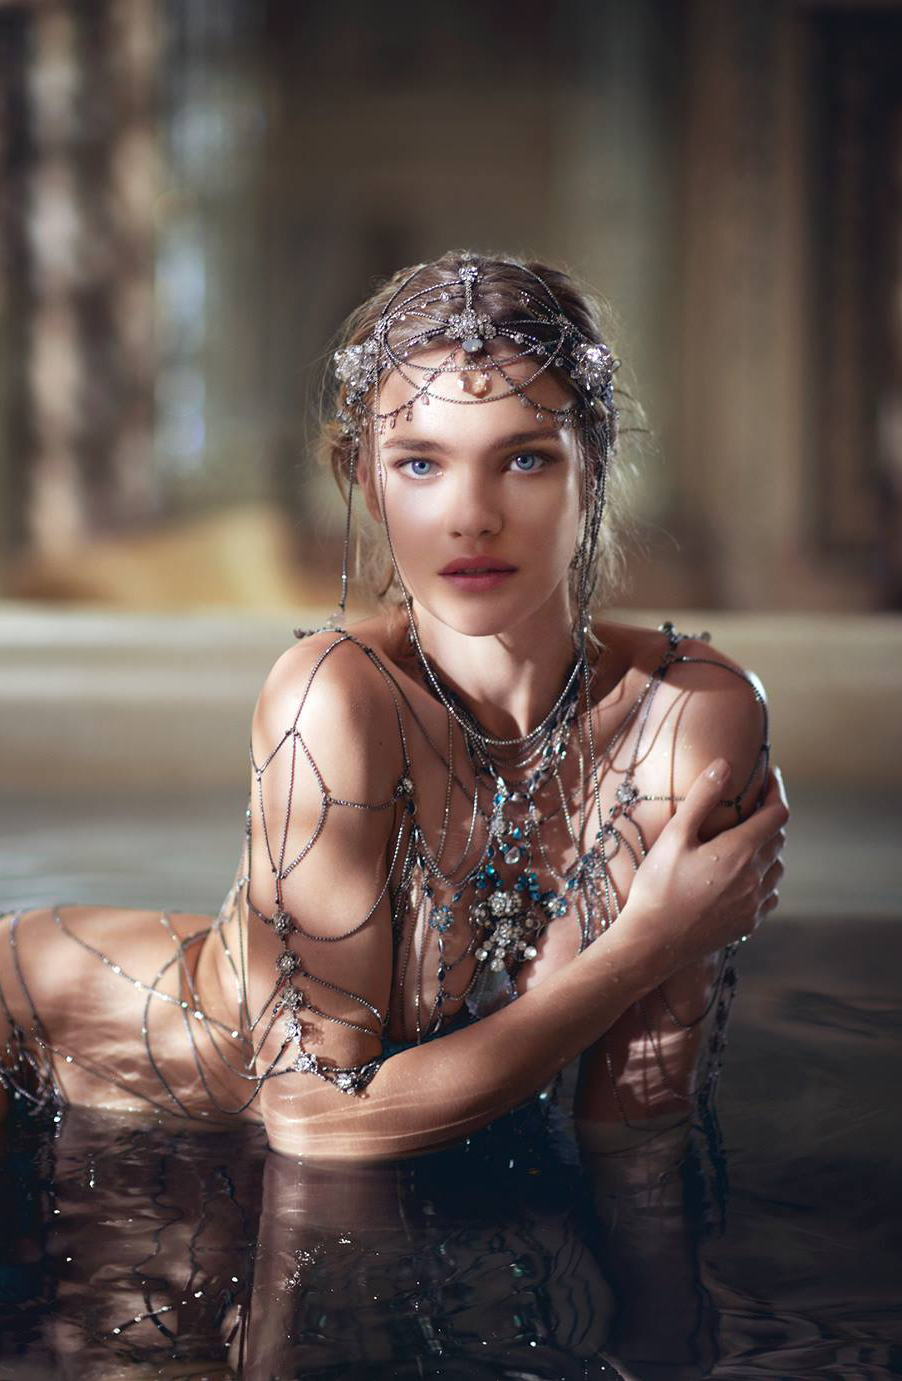 Natalia Vodianova in The Legend of Shalimar campaign film by Bruno Aveillan